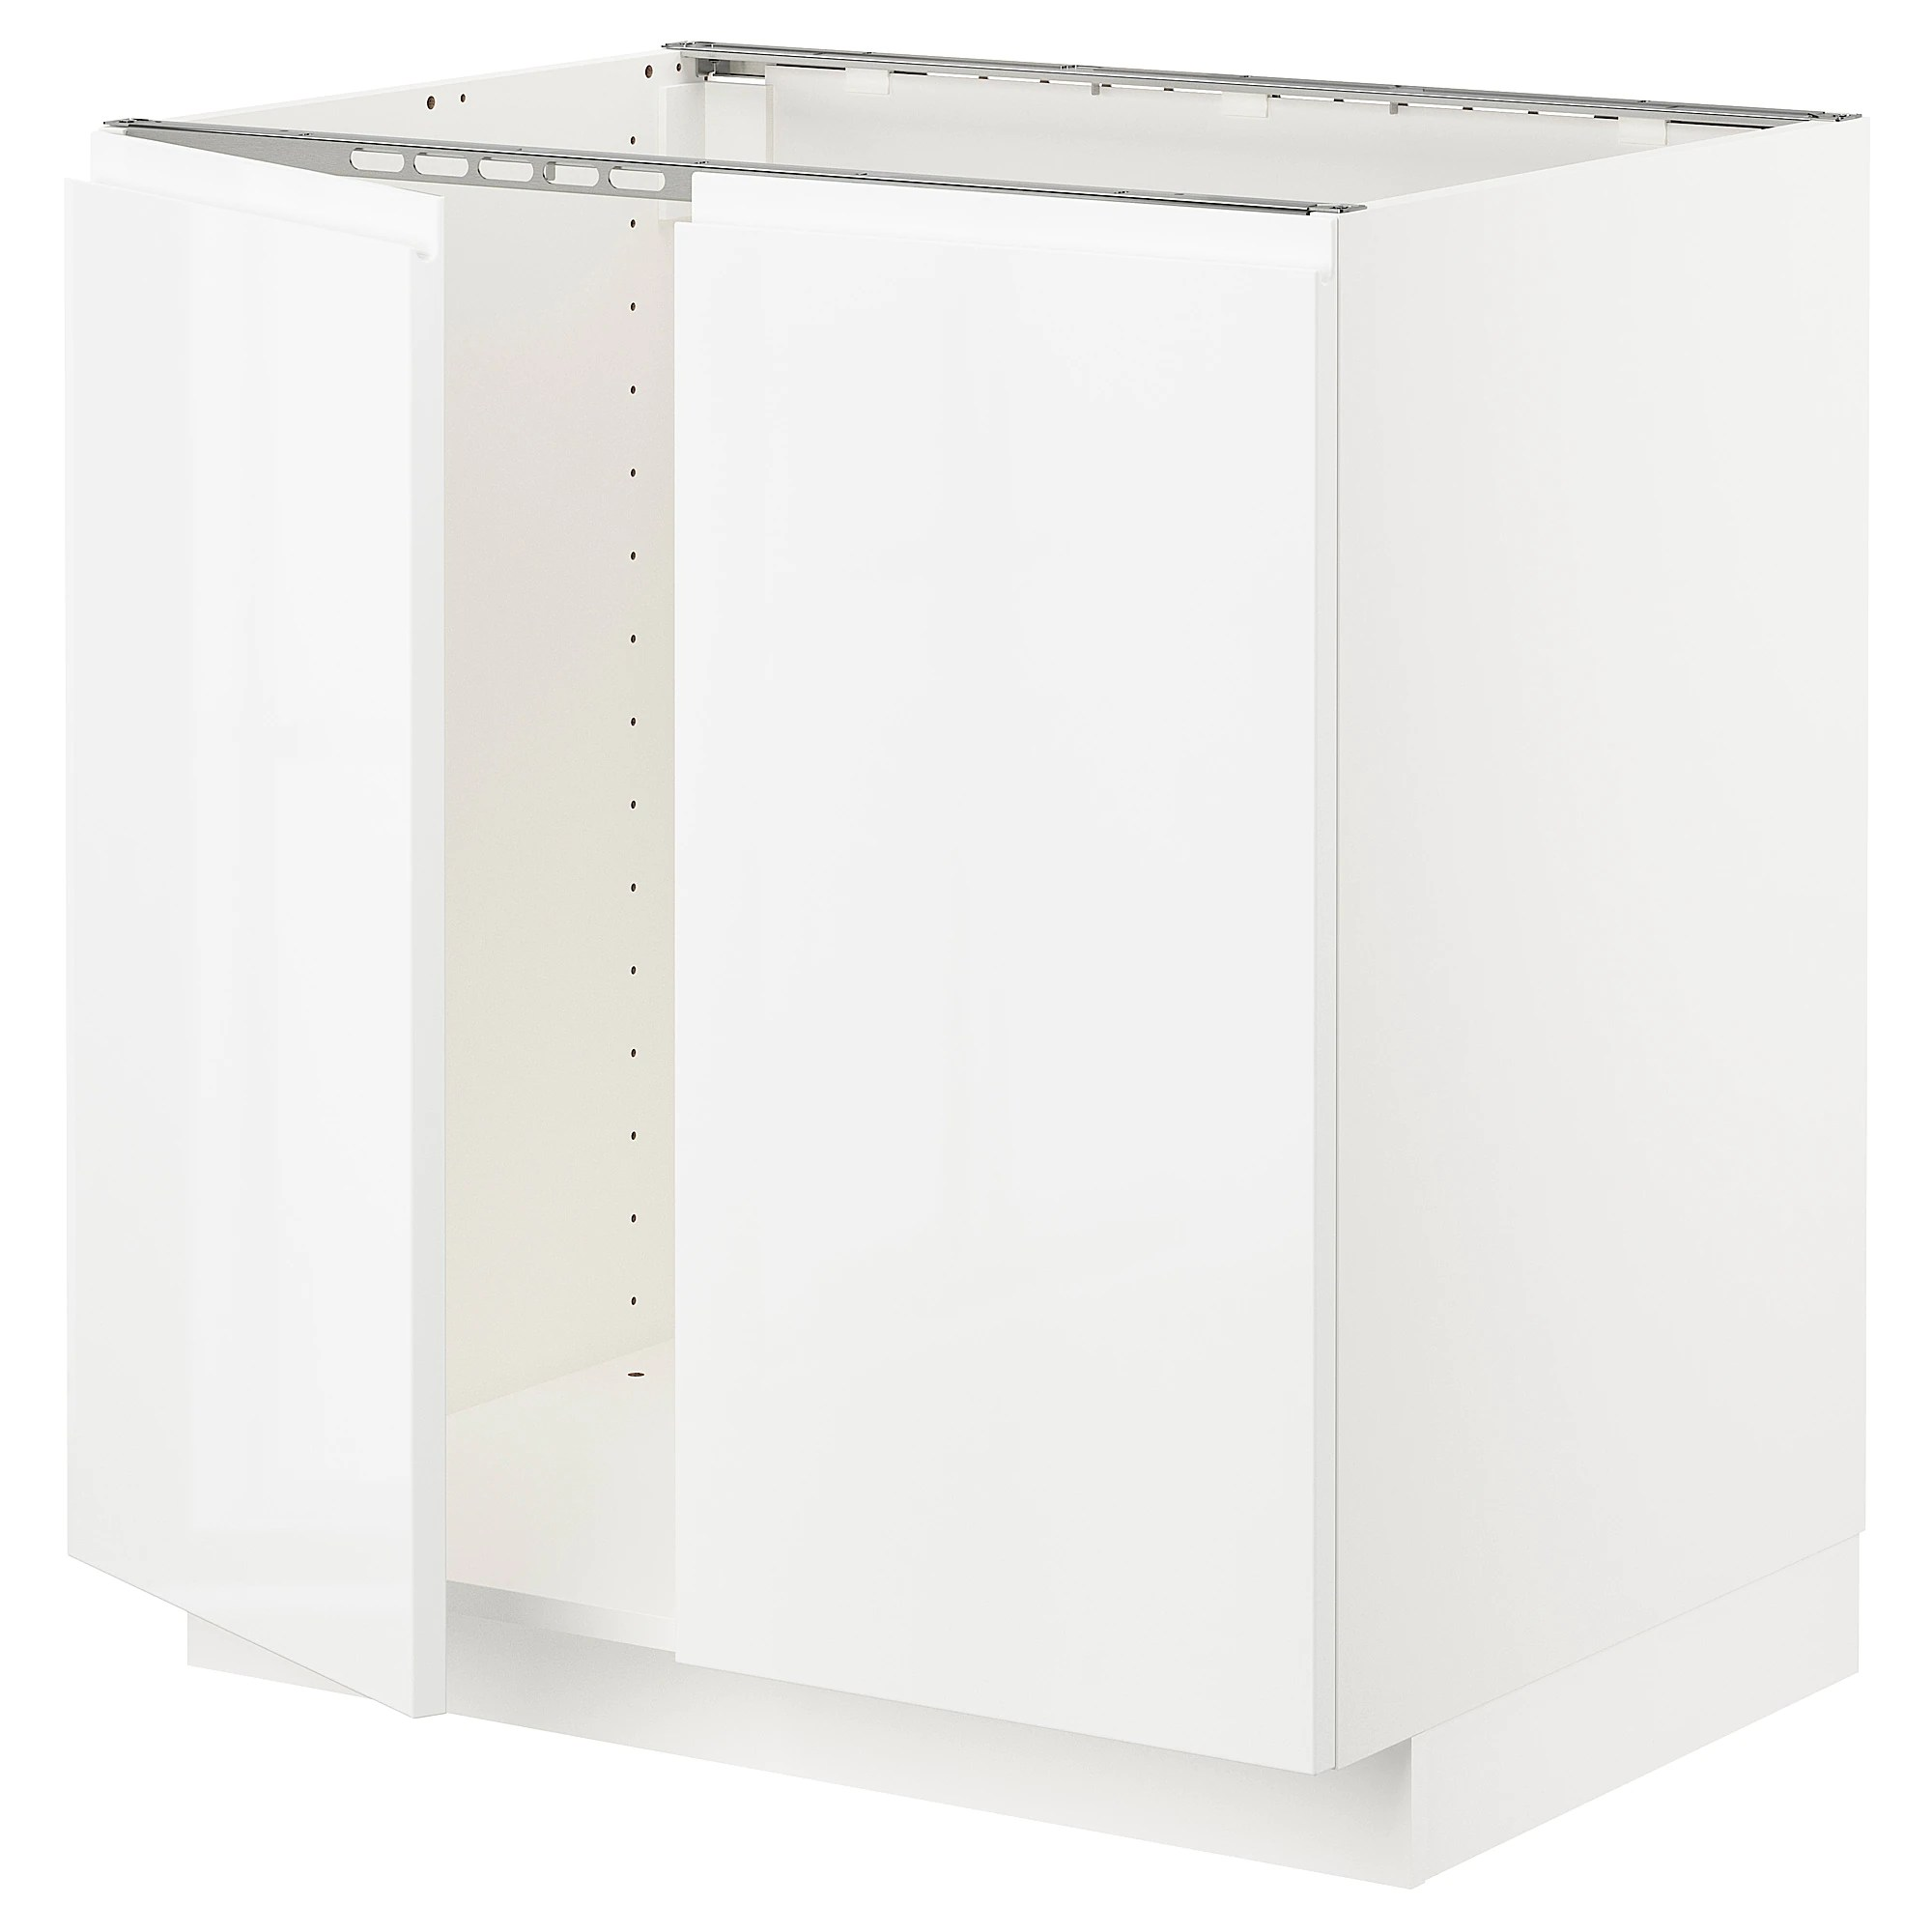 Cucina Ikea Tingsryd Jarsta Metod Base Cabinet For Sink 2 Doors White Tingsryd Black